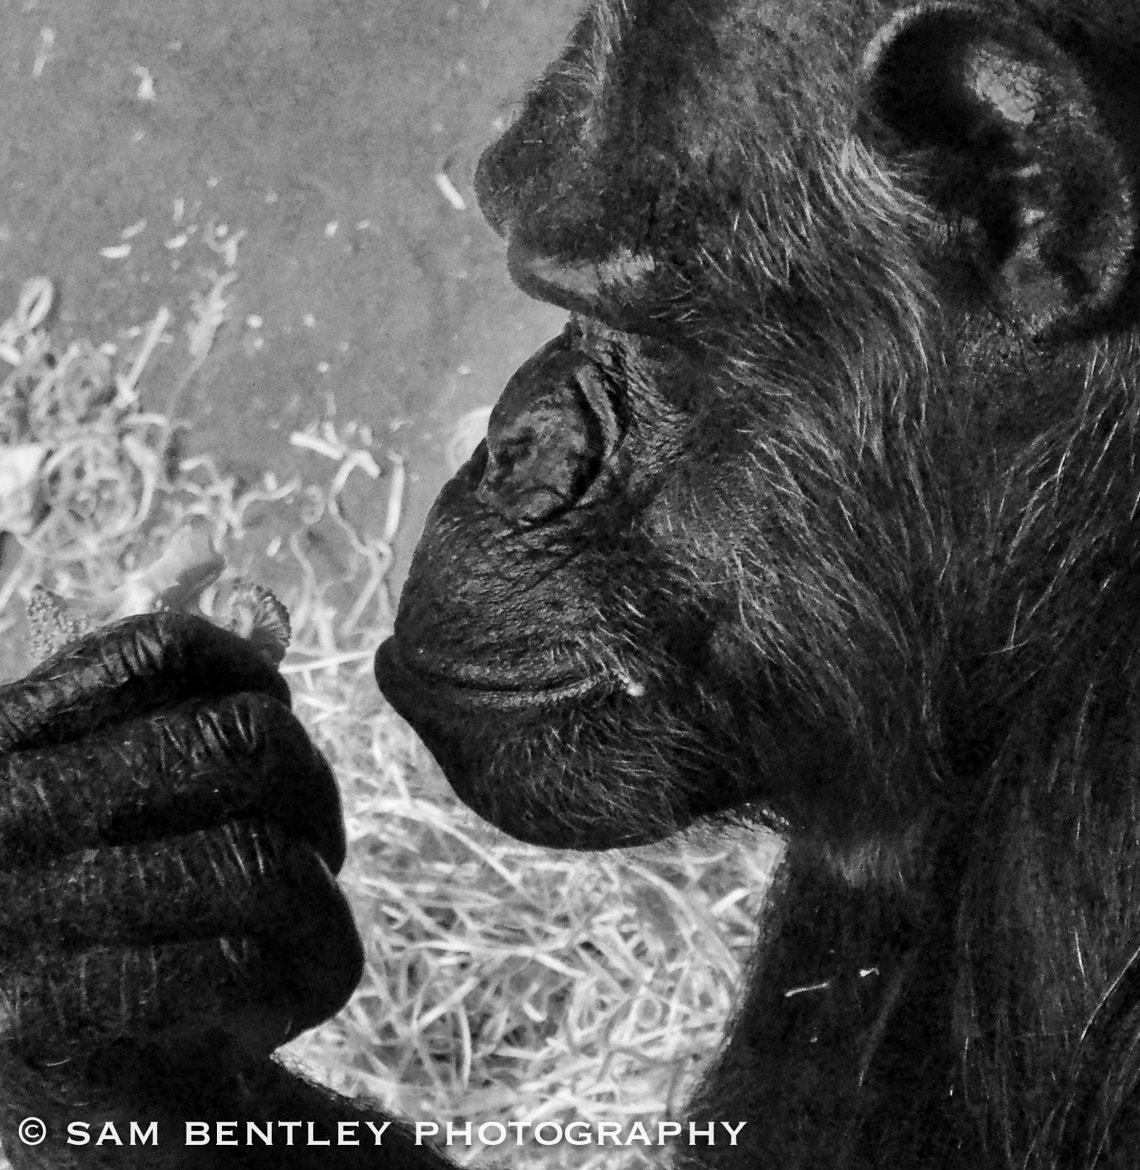 Photograph Thinking ape by Sam Bentley on 500px